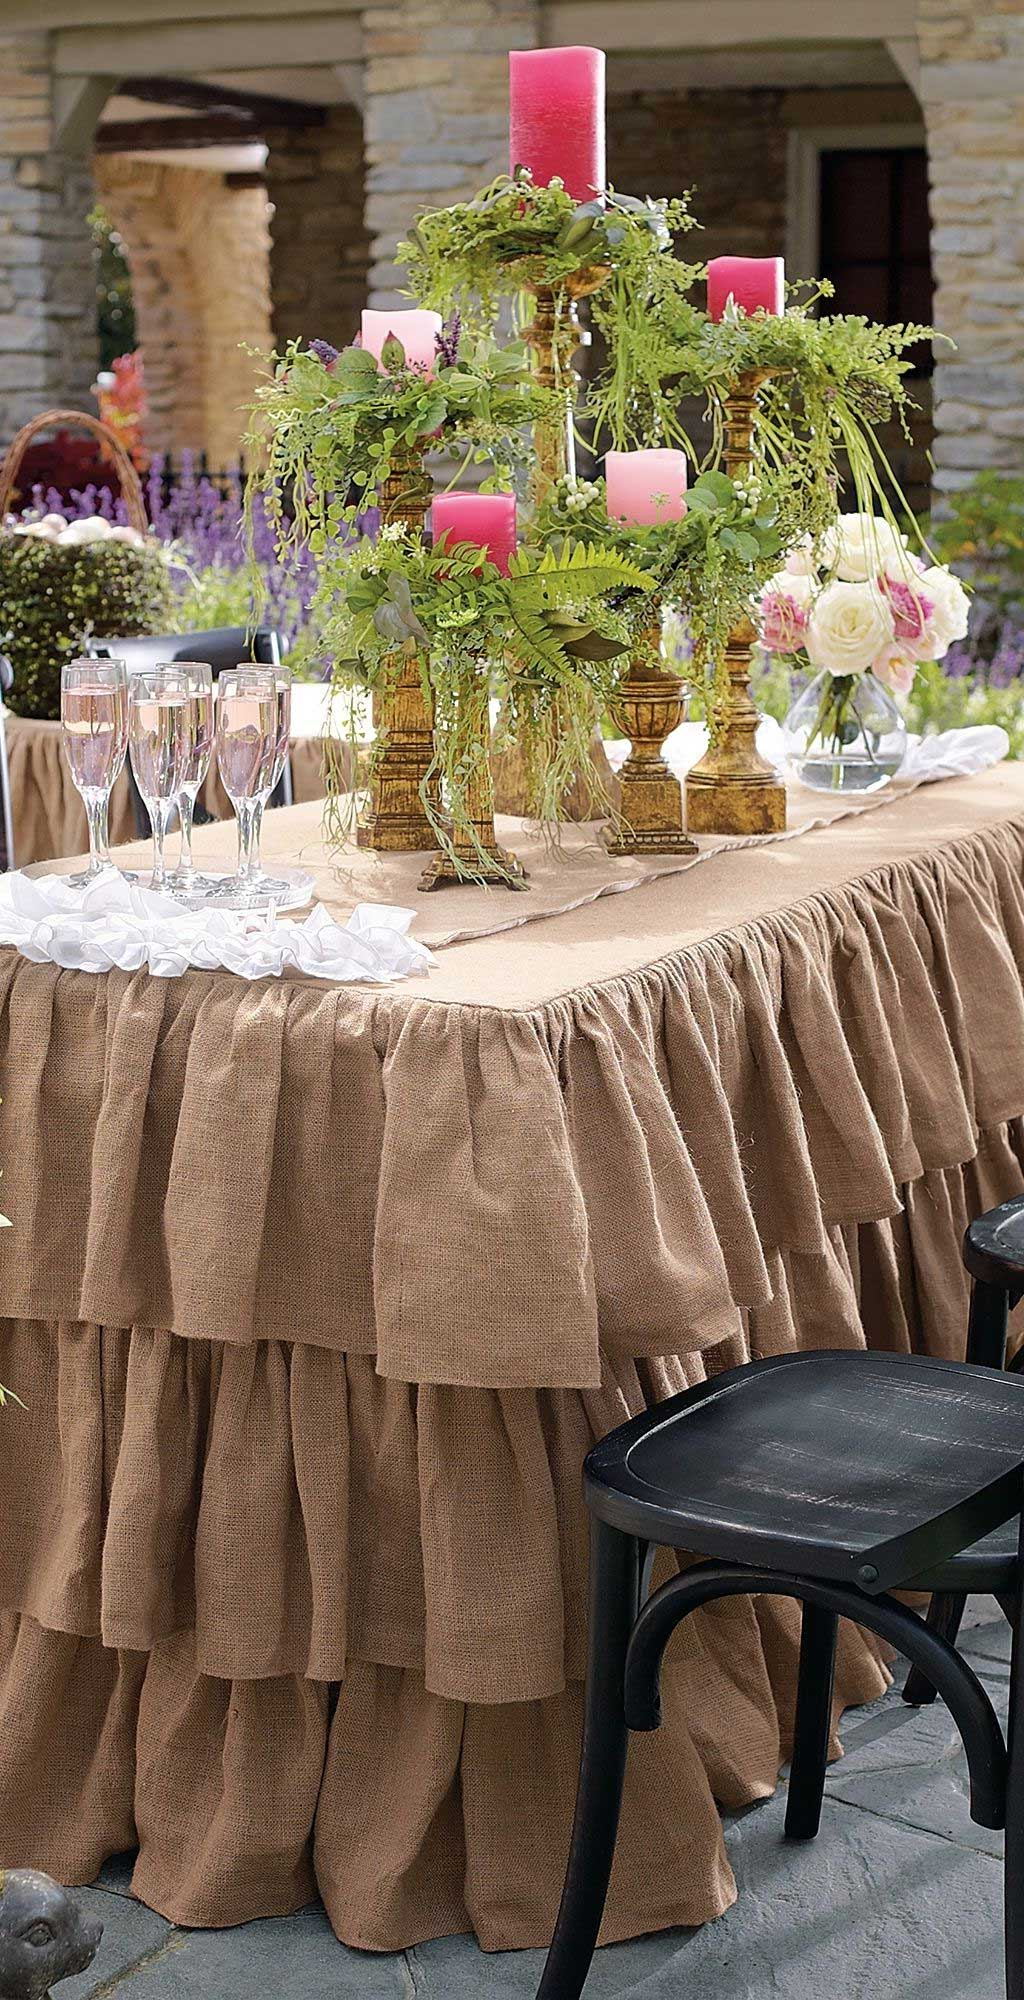 Add Elegance And Fancy, Check Out Wedding Table Skirts Ideas | Table Covers Depot